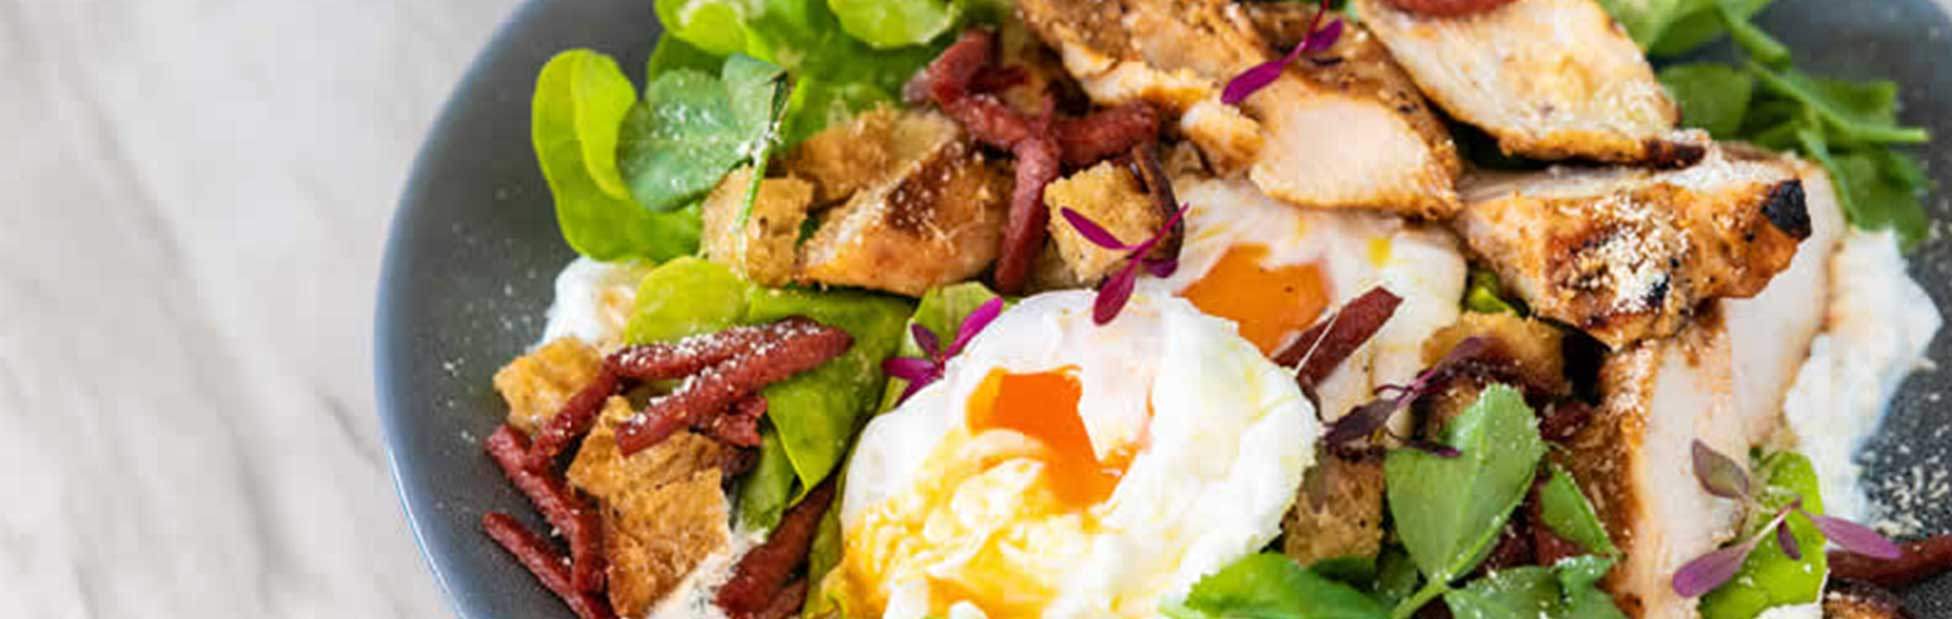 Salad in bowl with eggs